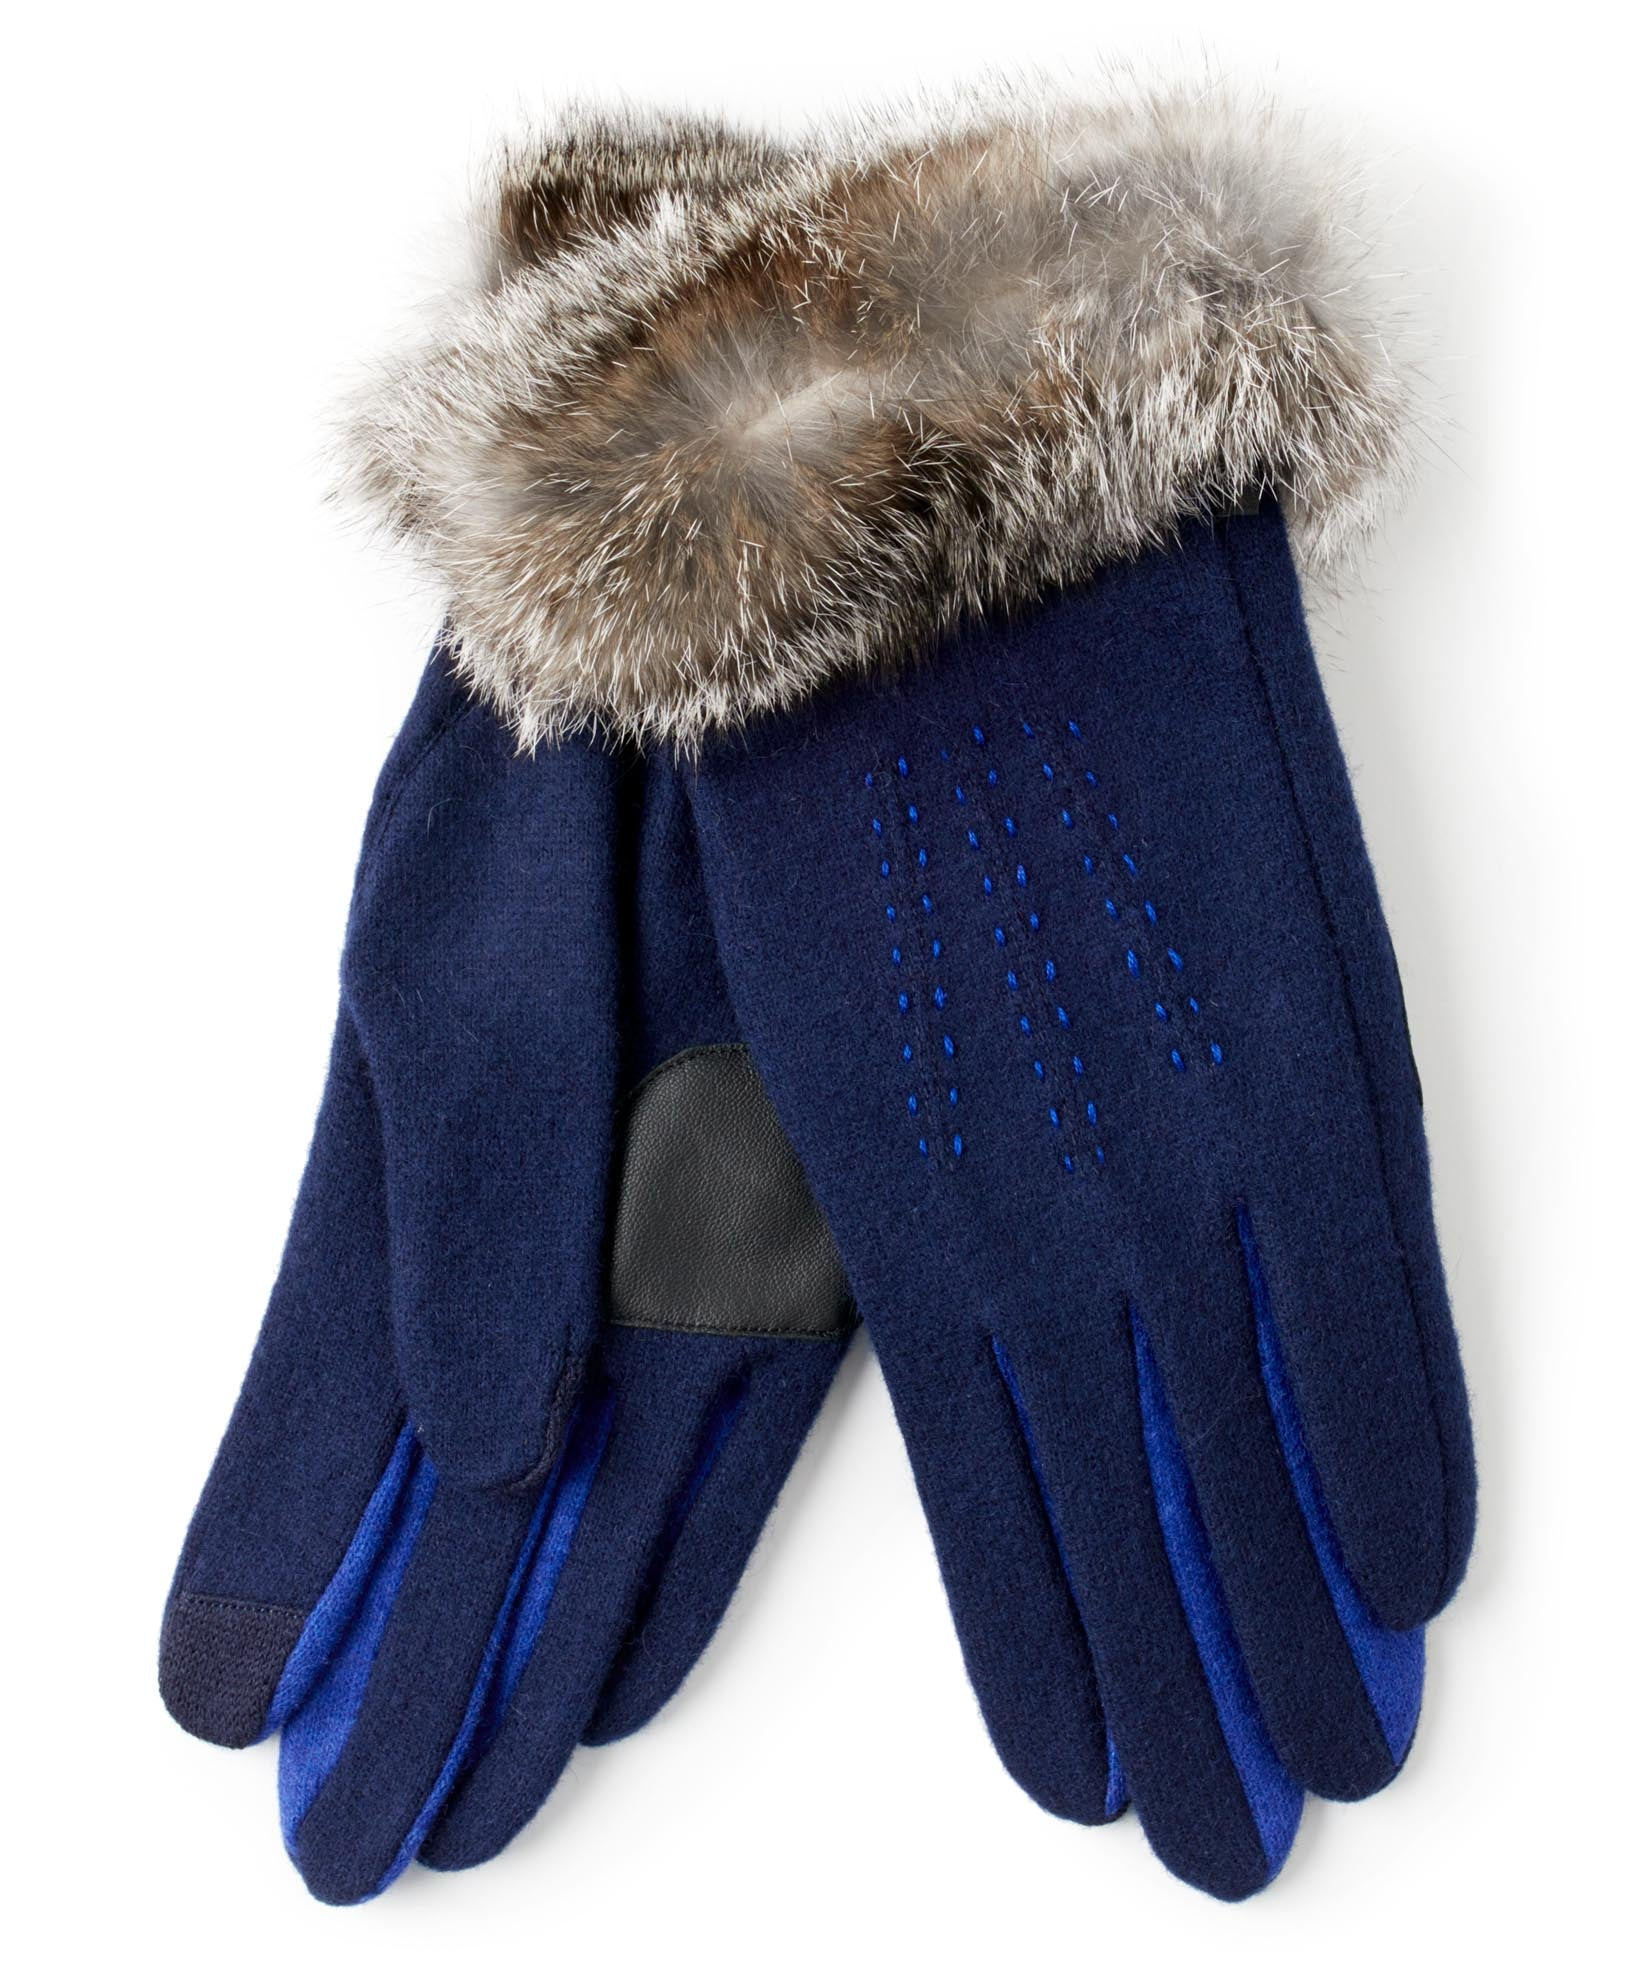 Maritime Navy - Color Block Fur Cuff Glove